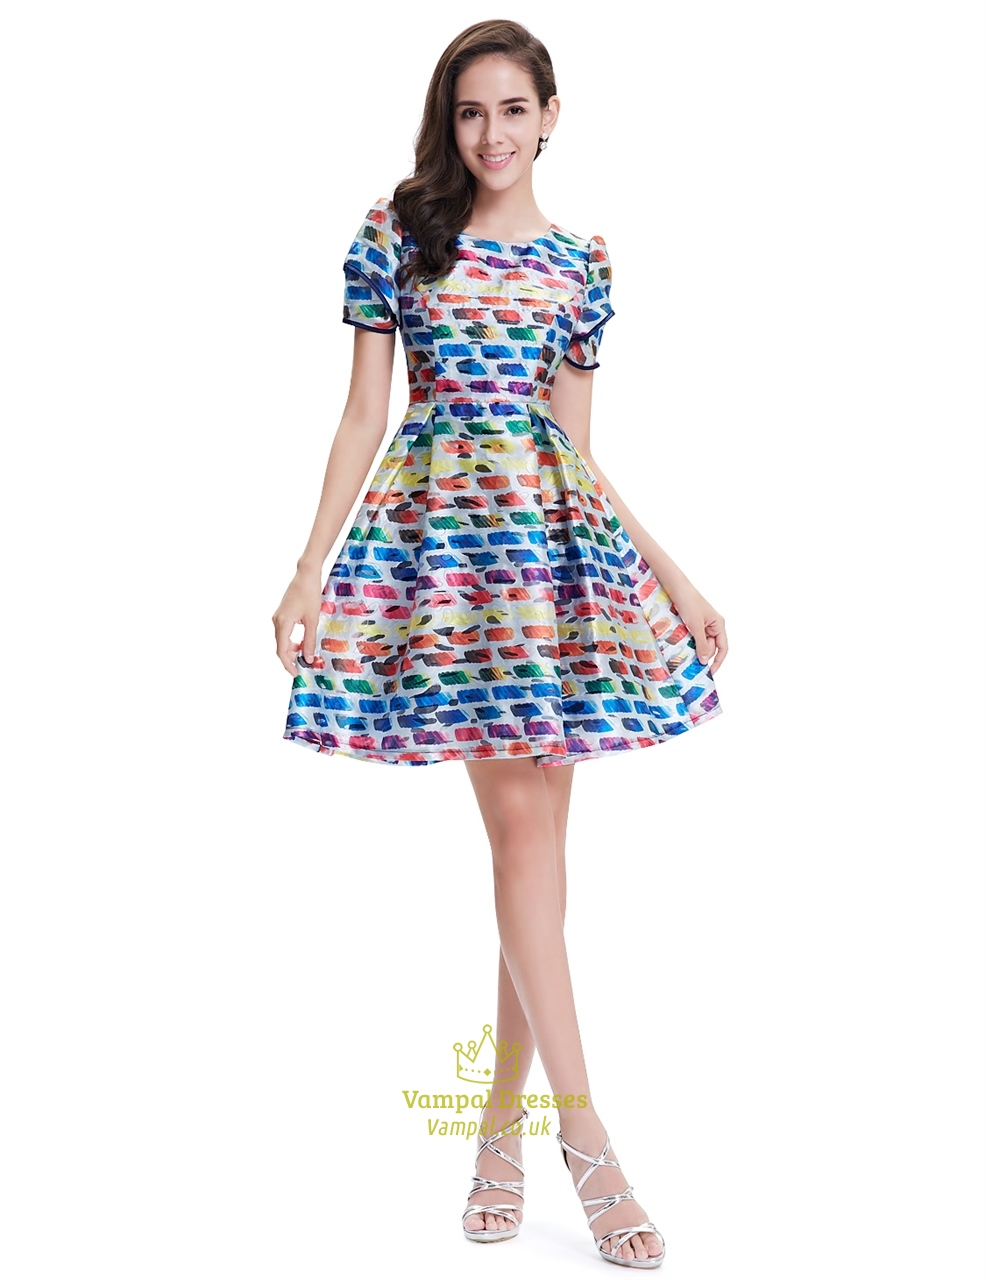 Wear these cheap fit & flare dresses for a day out with friends or on date. You will look cool any place you are seen in them. When formal events come around, you can wear one of the more glamorous cuts of these dresses.